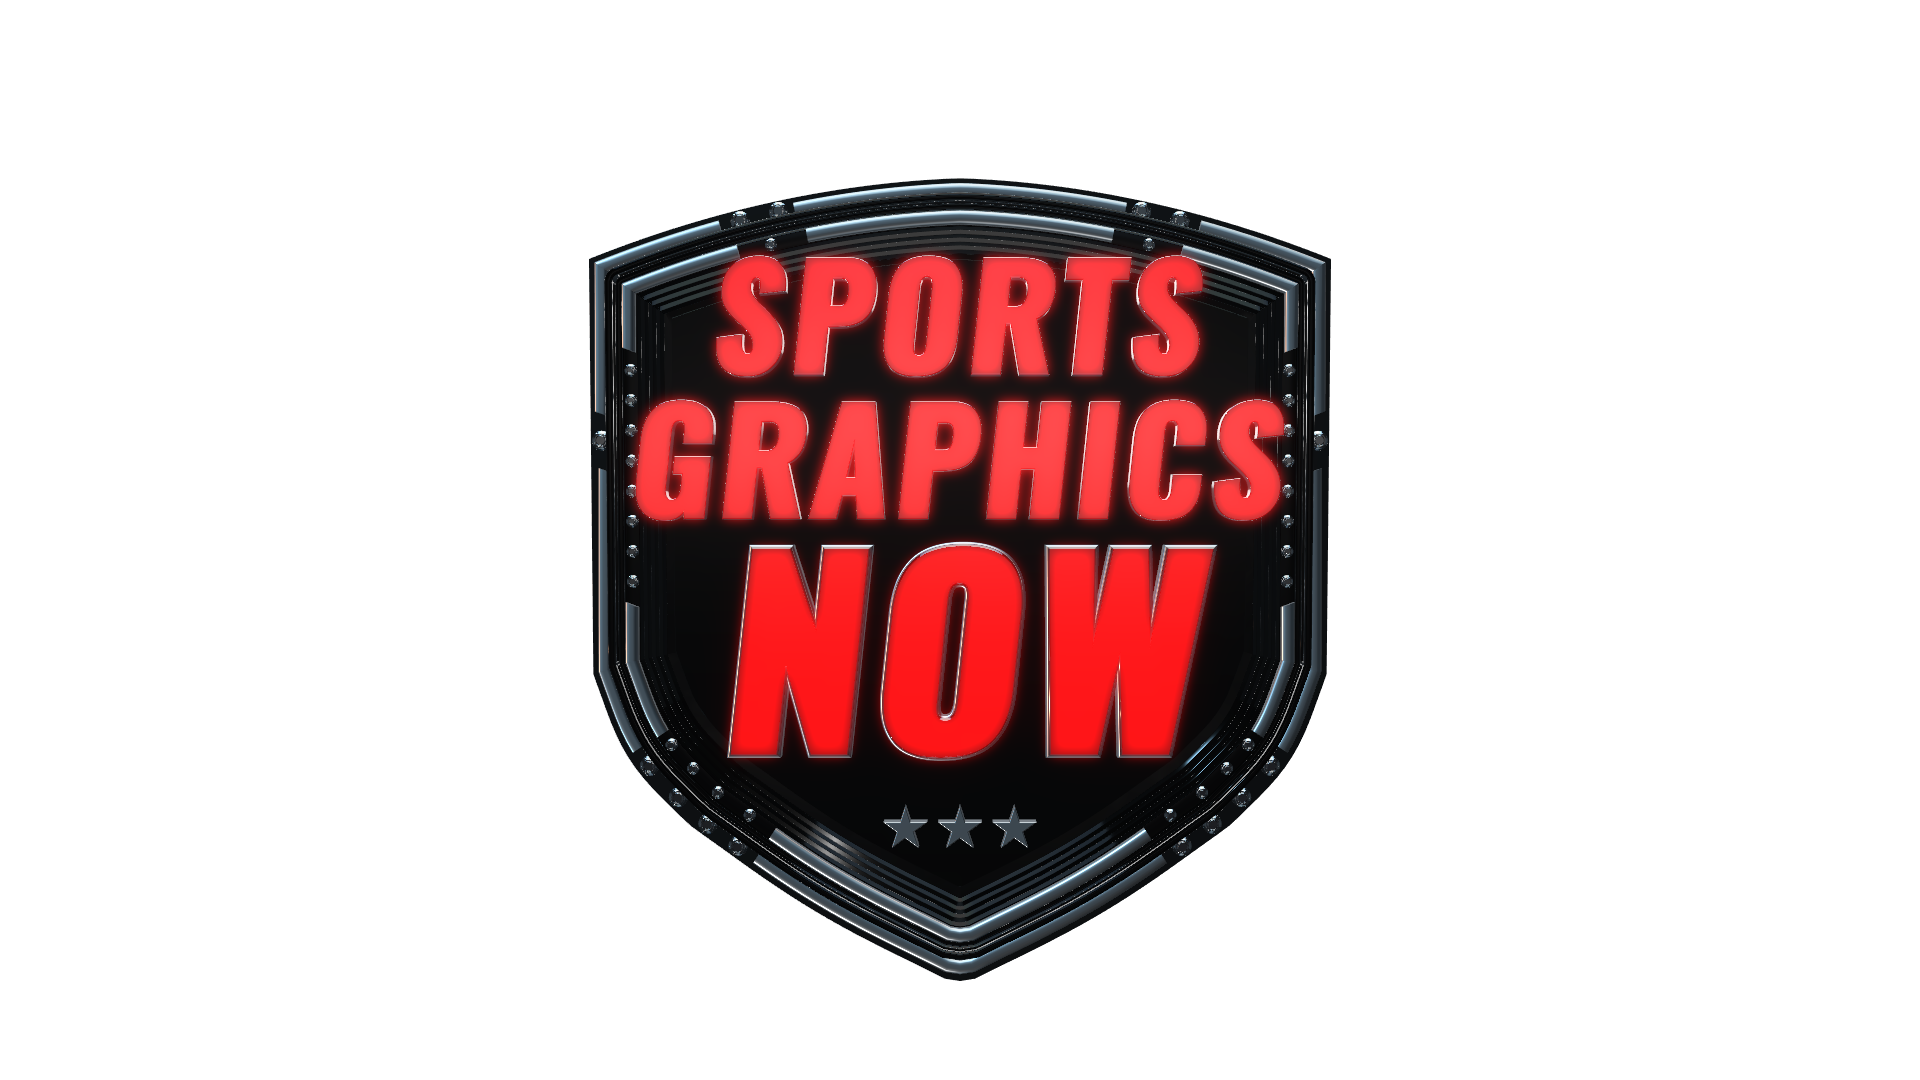 SPORTS GRAPHICS NOW